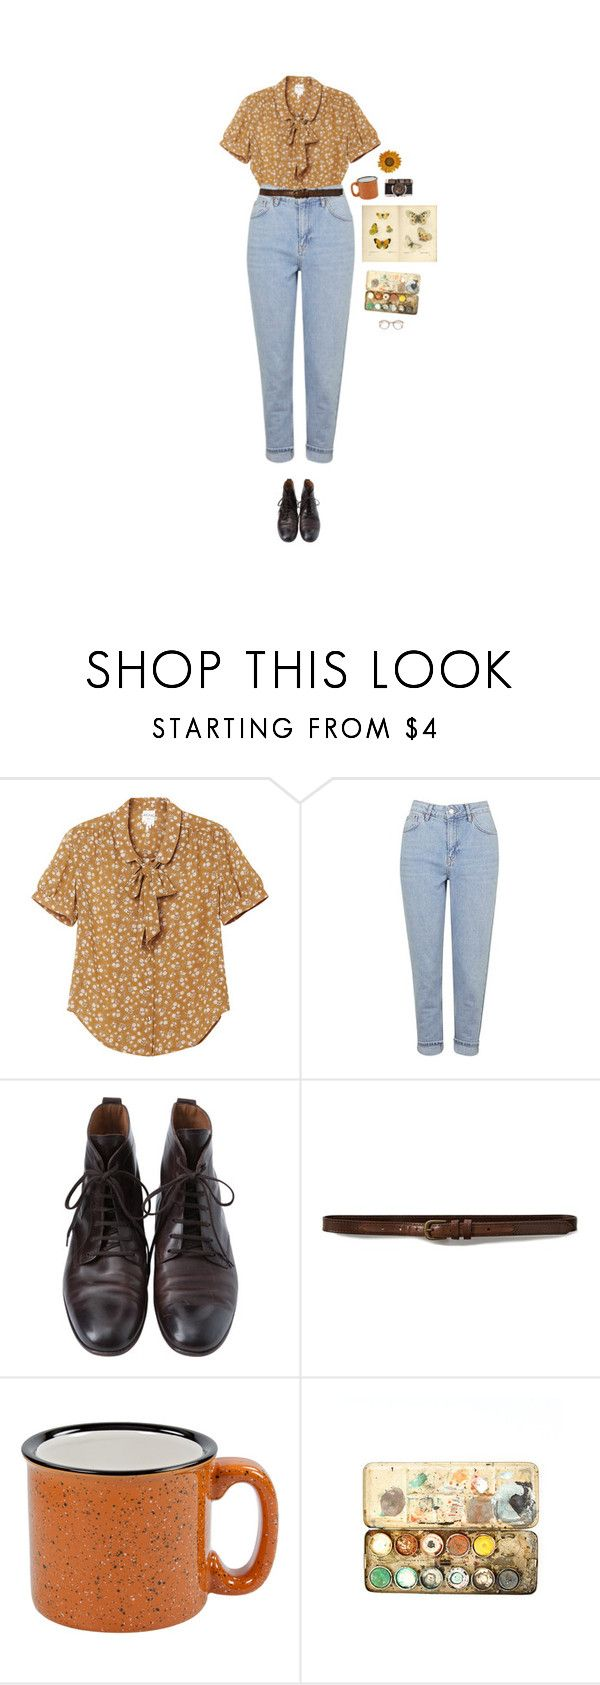 """unohdimme miten päädyimme tänme"" by hetasdfghjkl ❤ liked on Polyvore featuring Monki, Topshop, Margaret Howell and Abercrombie & Fitch"